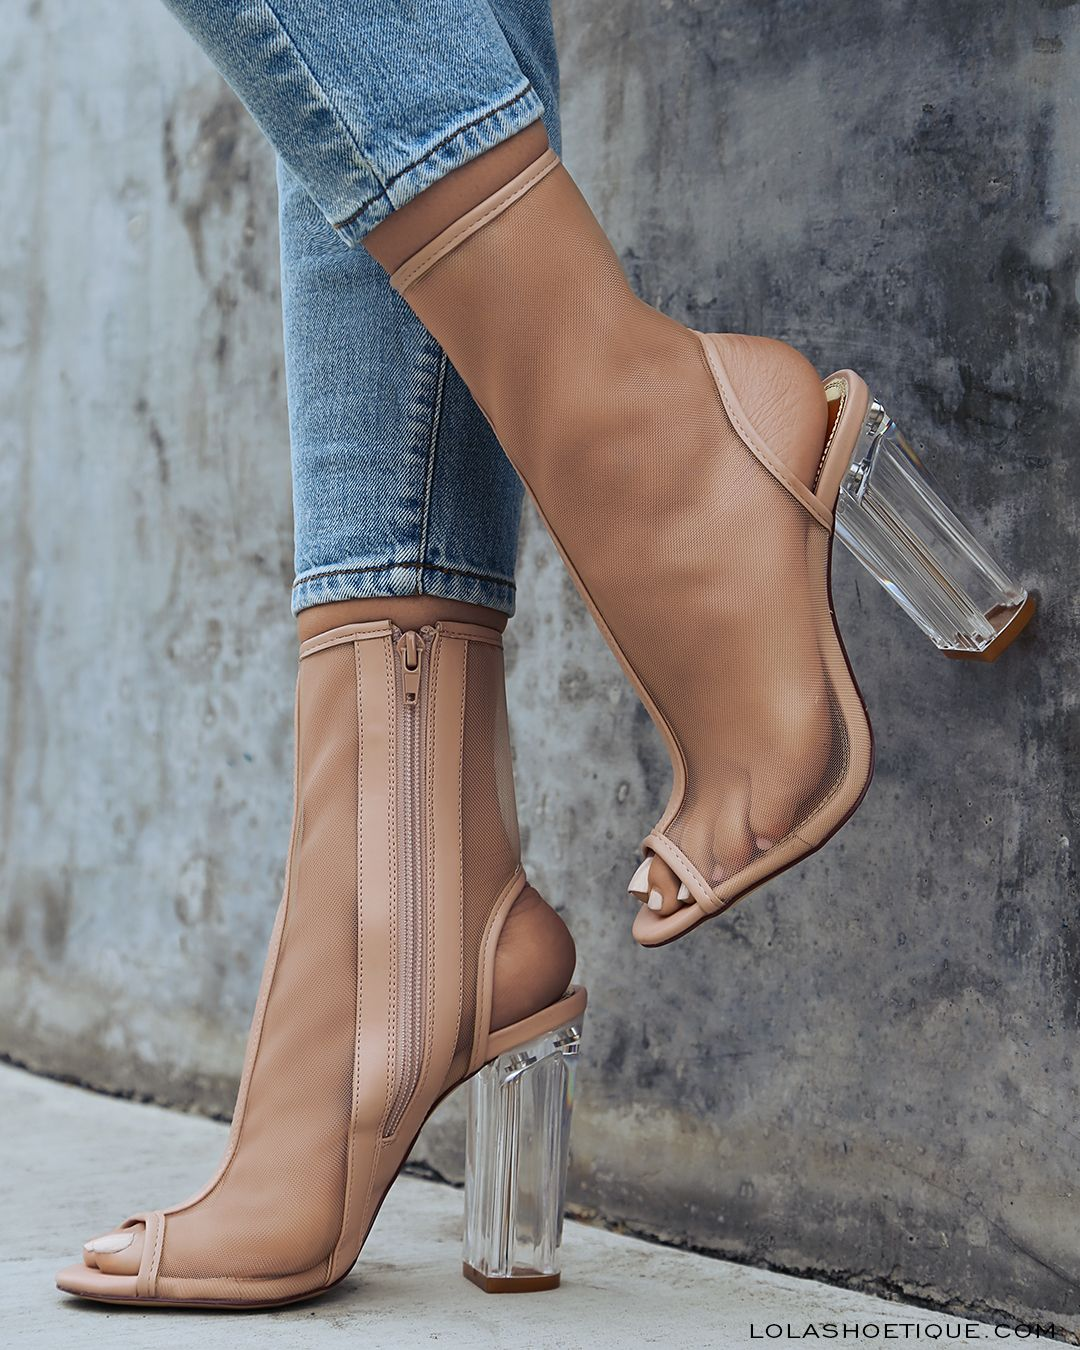 4343f8ce4a2  lolashoetique  love  nude  heel  blockheel  lifestyle  fashion  blogger   ootd  summer  spring